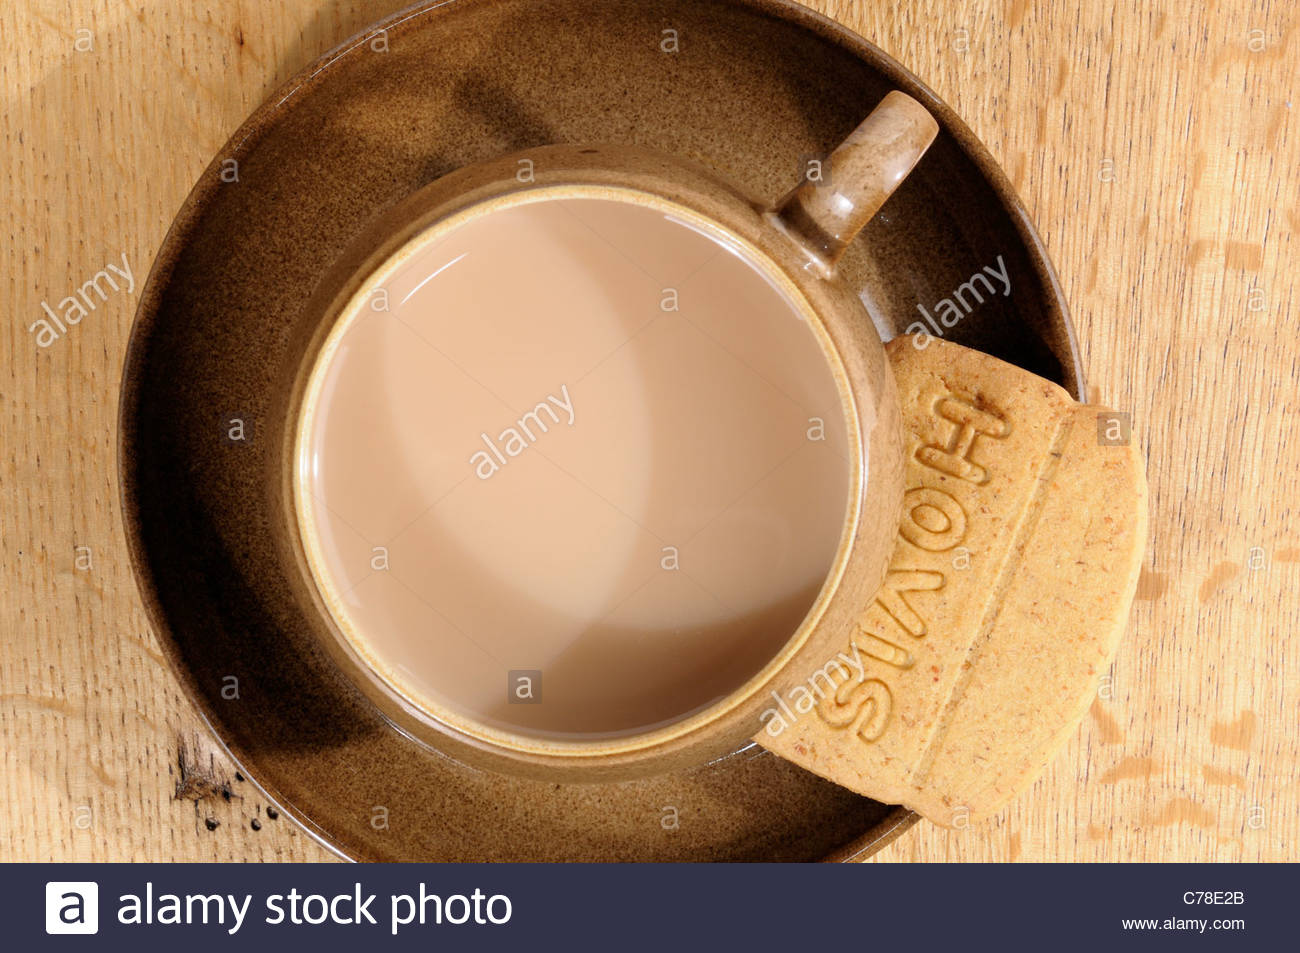 Hovis biscuit and Tea cup, England - Stock Image